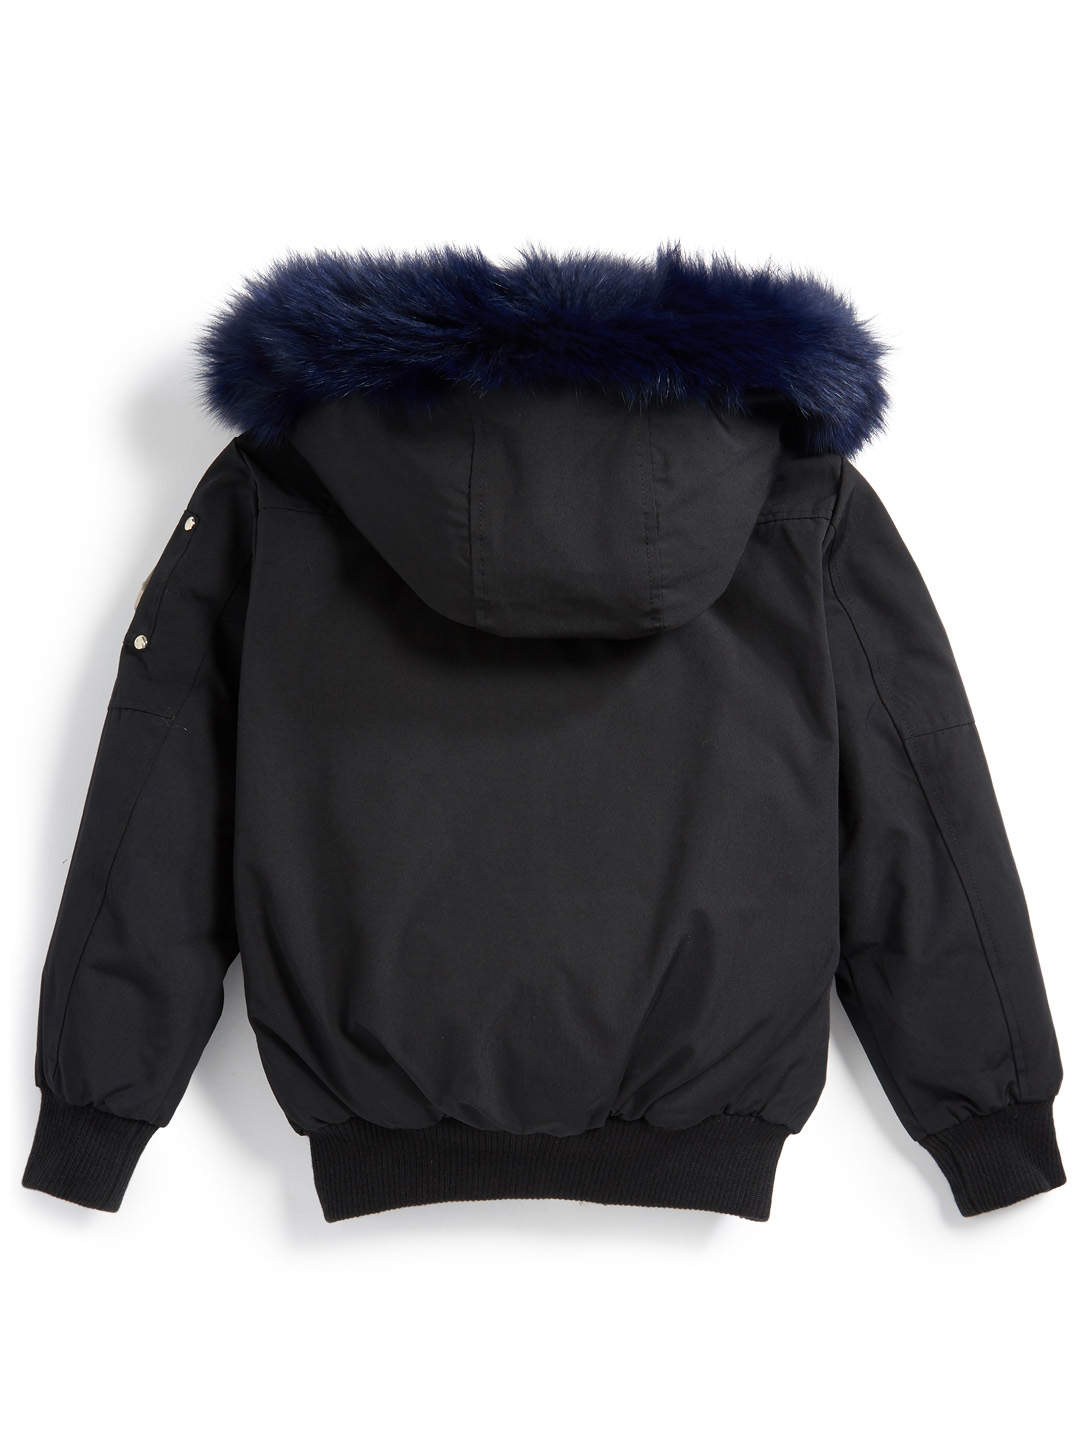 MOOSE KNUCKLES Boys Down Bomber Jacket With Fur Hood Kids Black